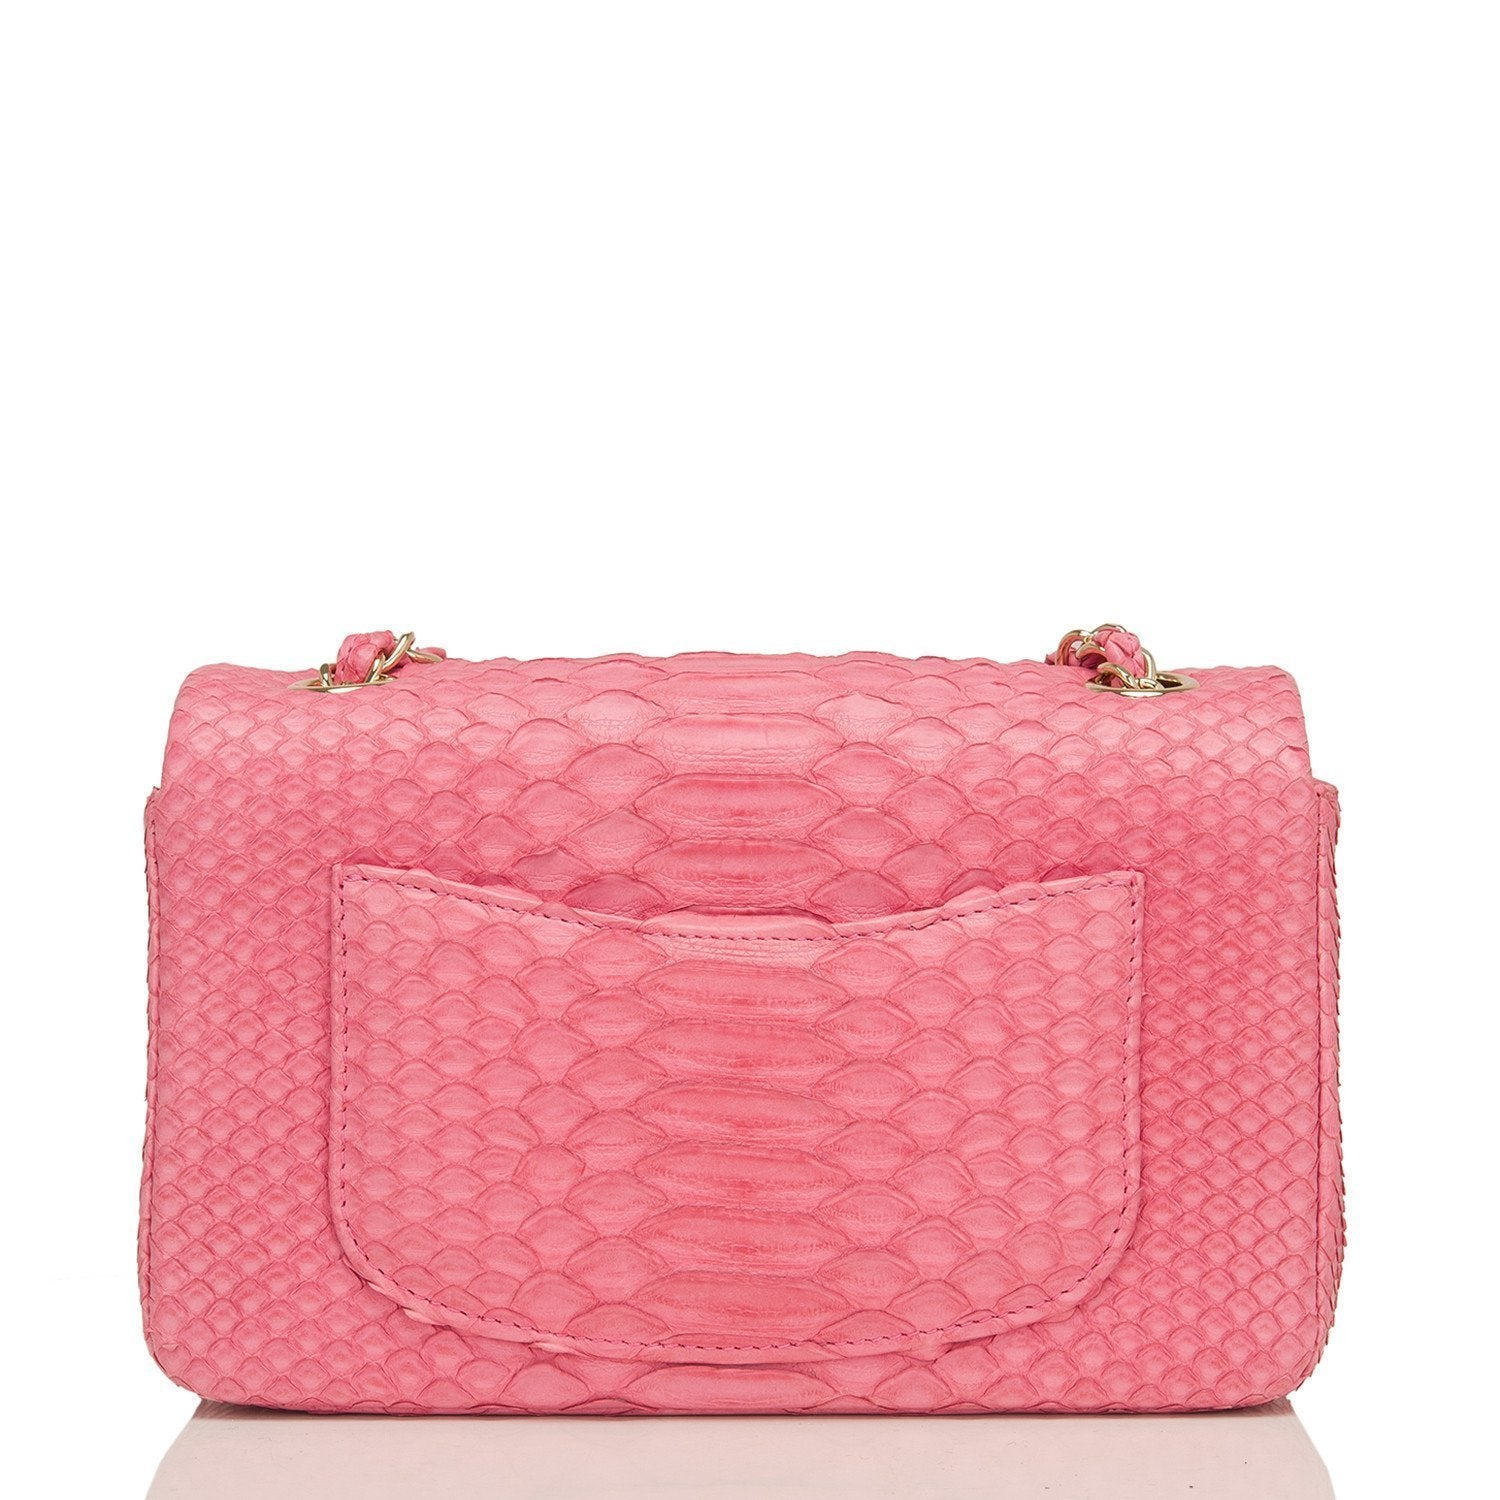 Chanel Pink Python Rectangular Mini Classic Flap Bag Handbags